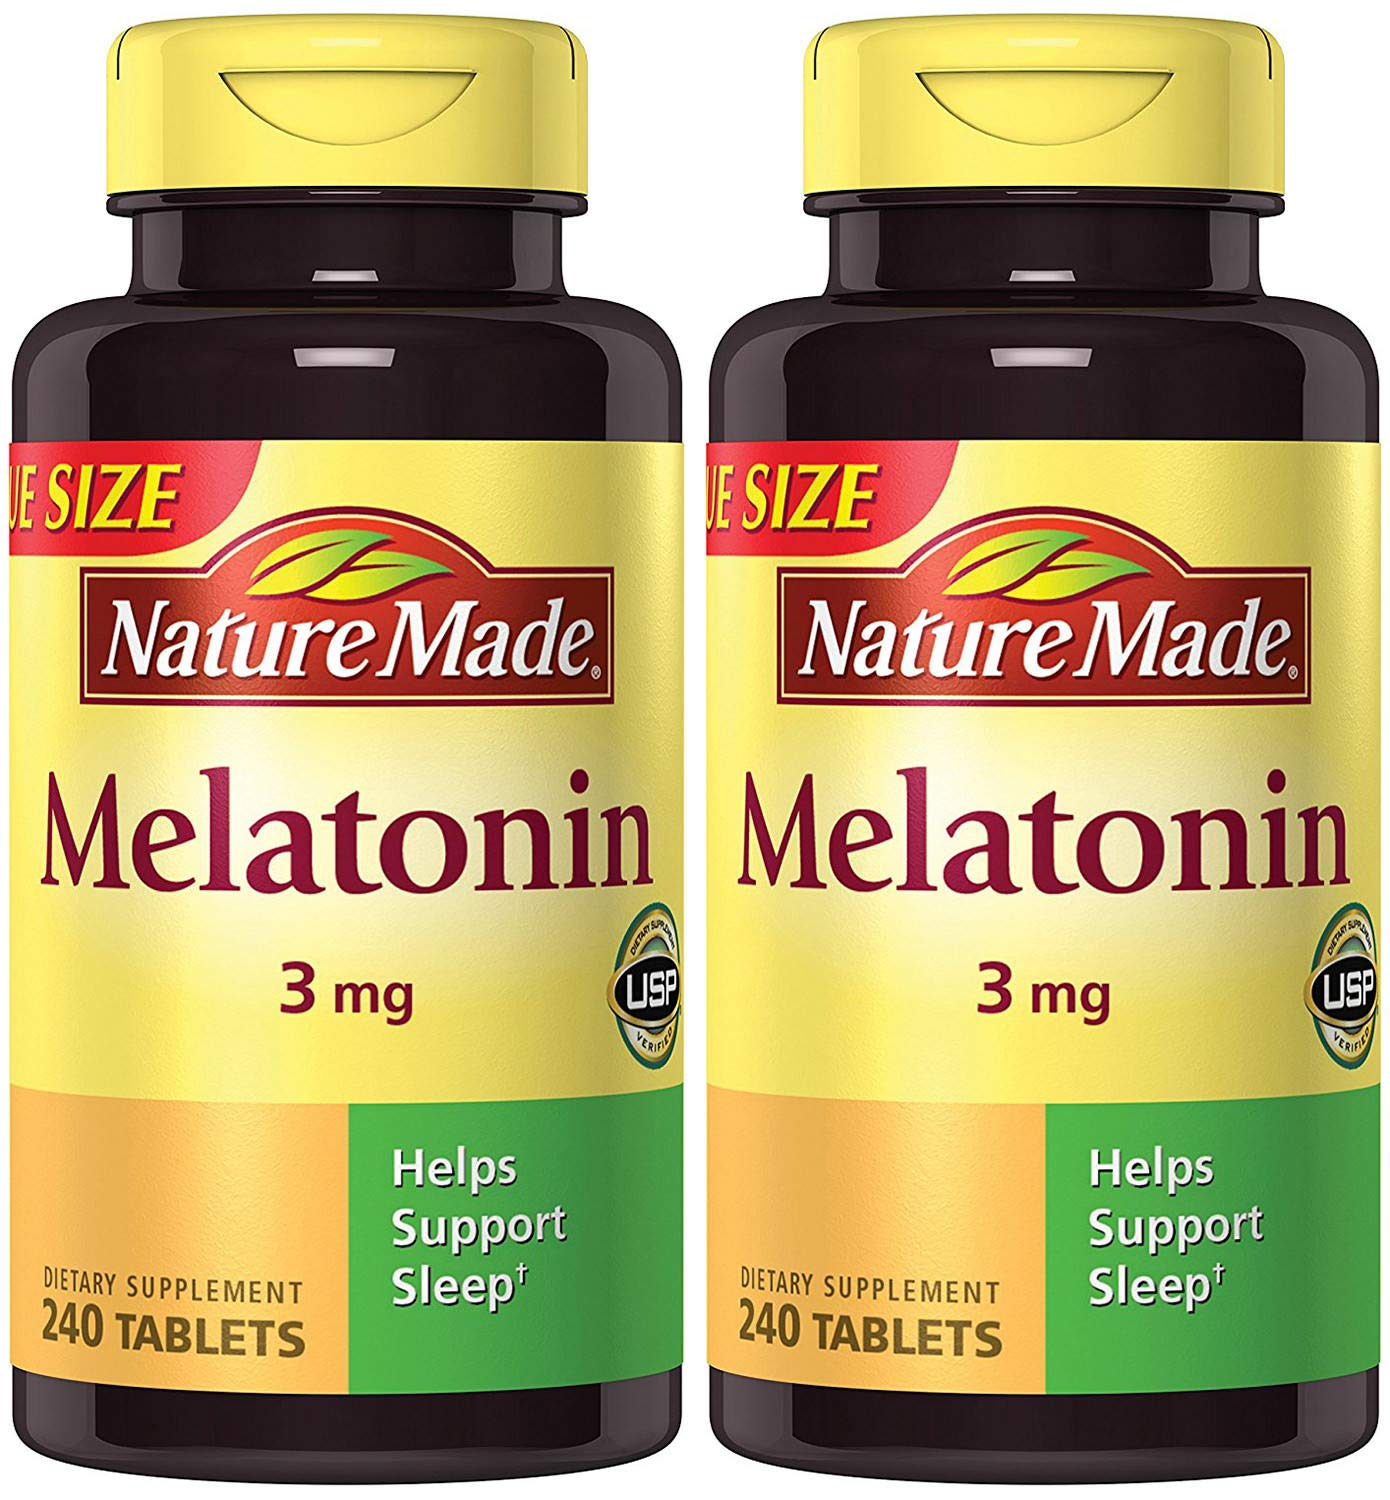 Amazon.com: Nature Made Melatonin 3 mg, 240 Count (2 Bottles): Health & Personal Care